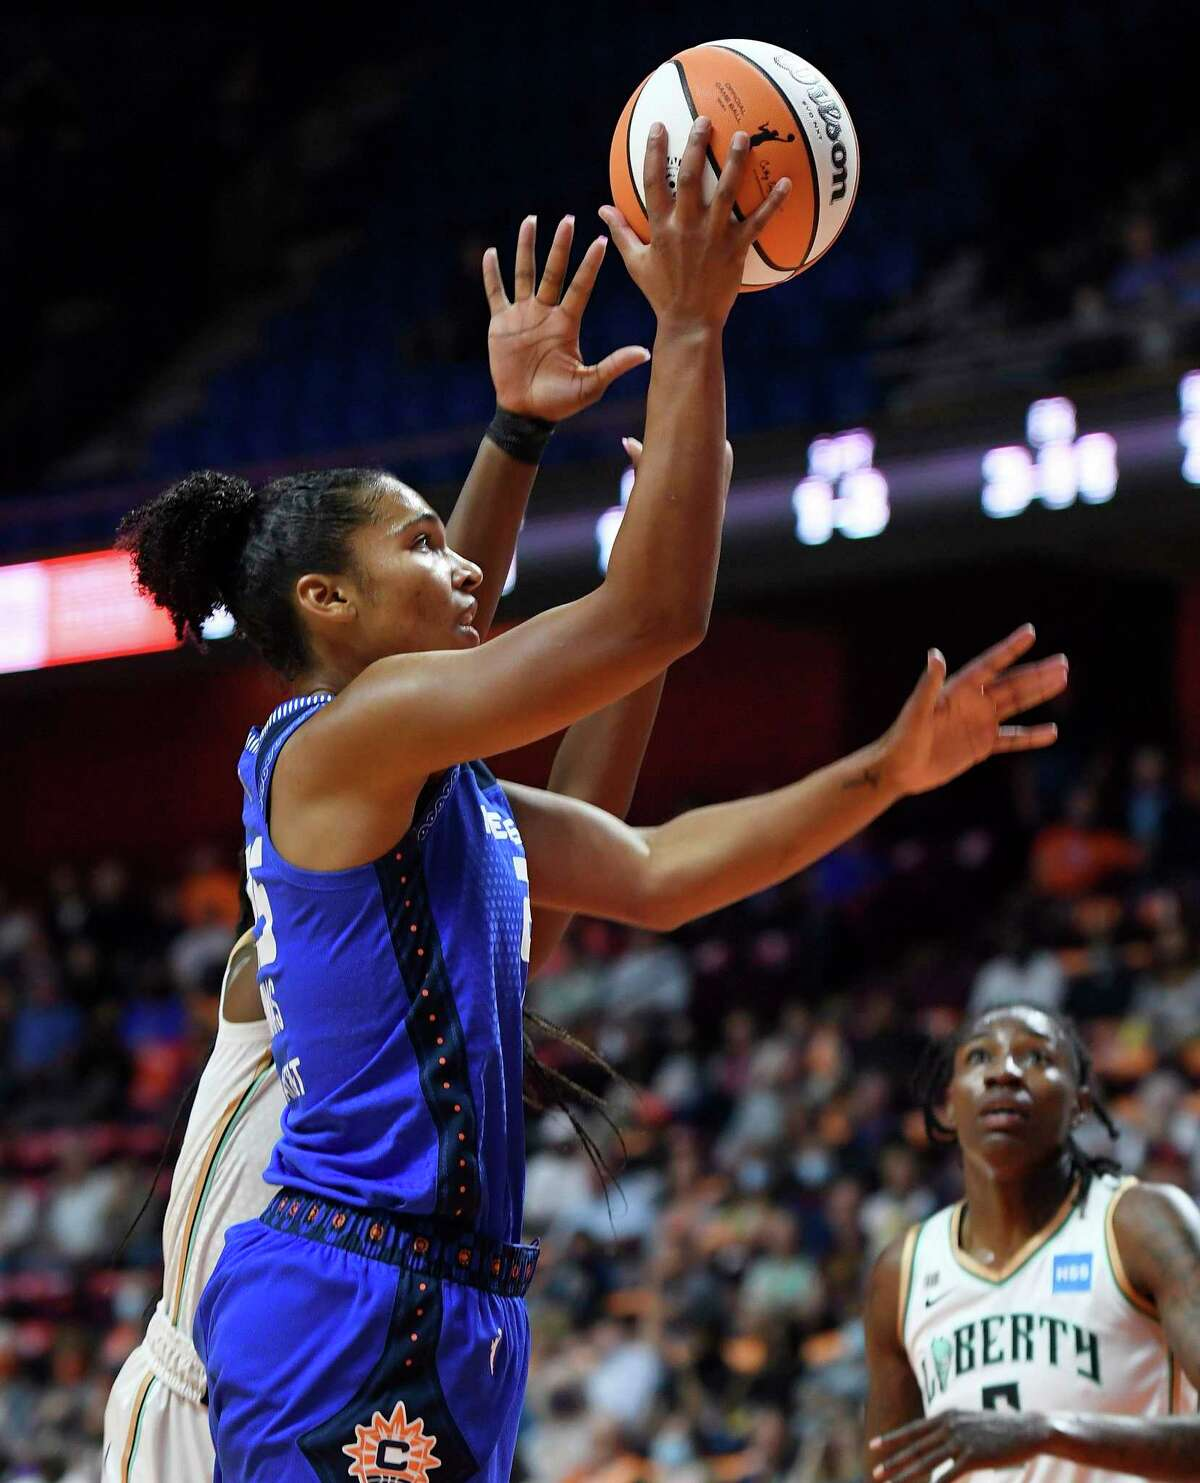 Forward Alyssa Thomas and the Connecticut Sun enter the WNBA playoffs as the No. 1 overall seed.